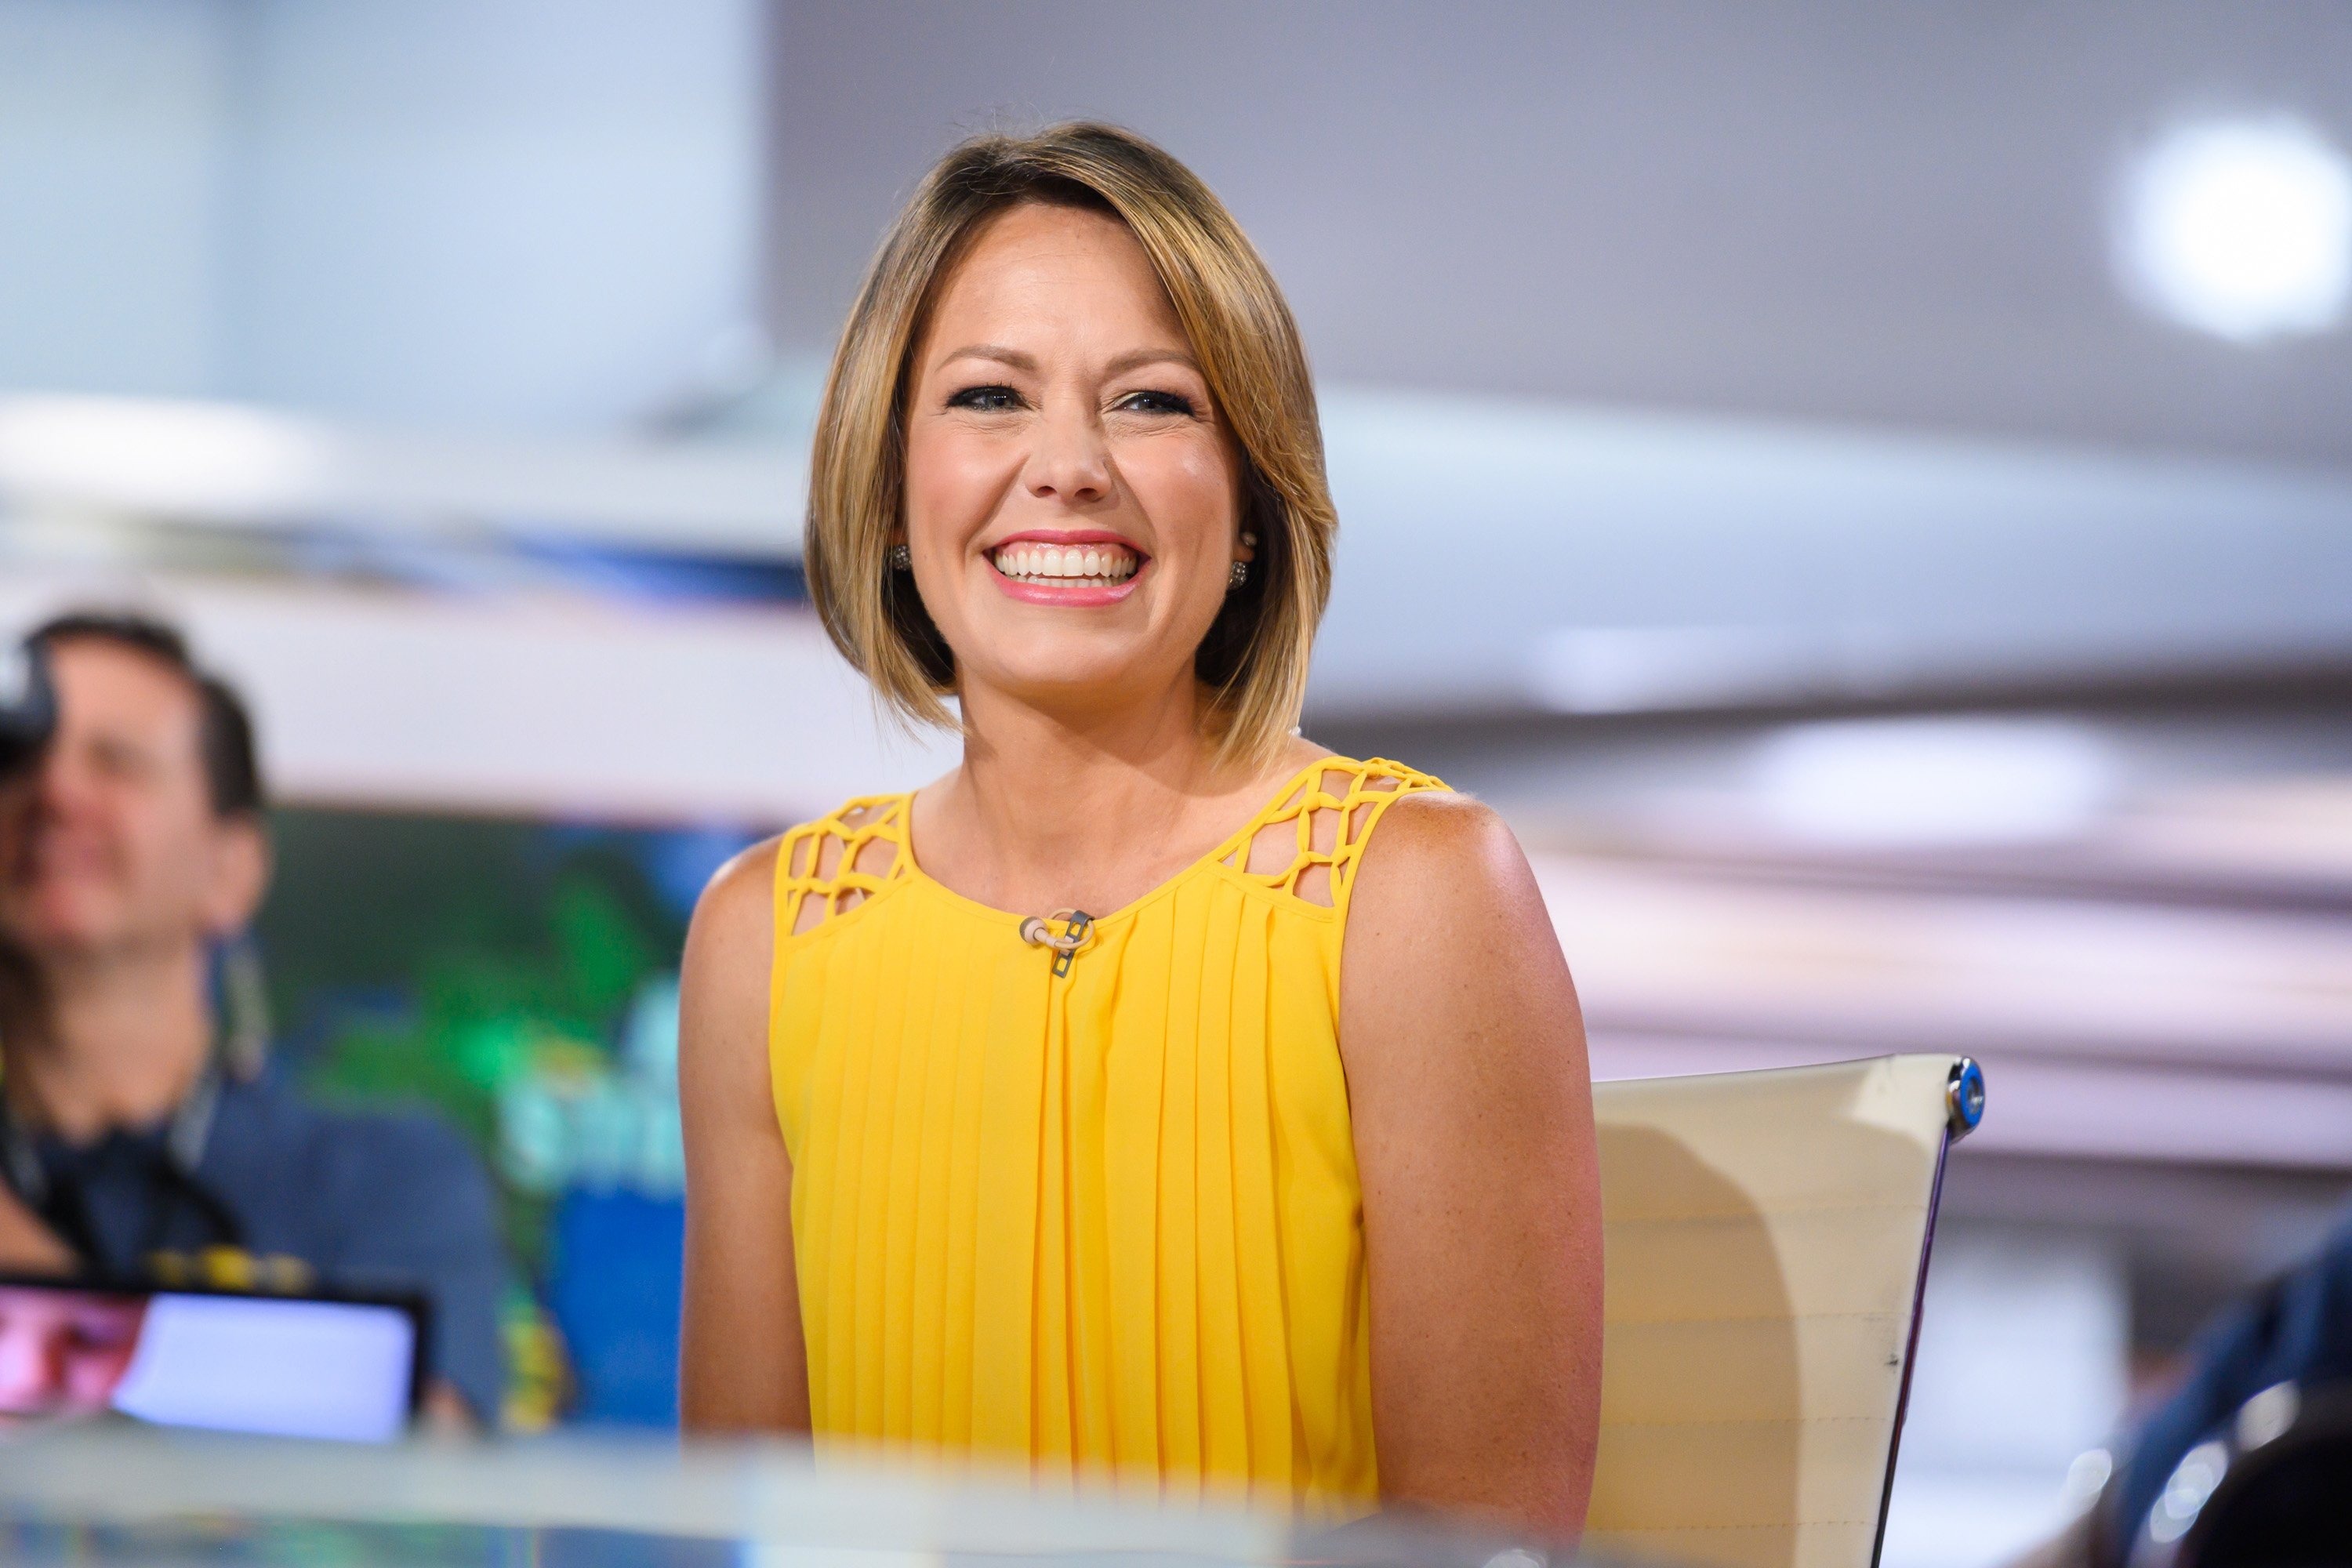 """Dylan Dreyer poses on season 68 of the """"Today Show"""" on Wednesday, July 17, 2019 